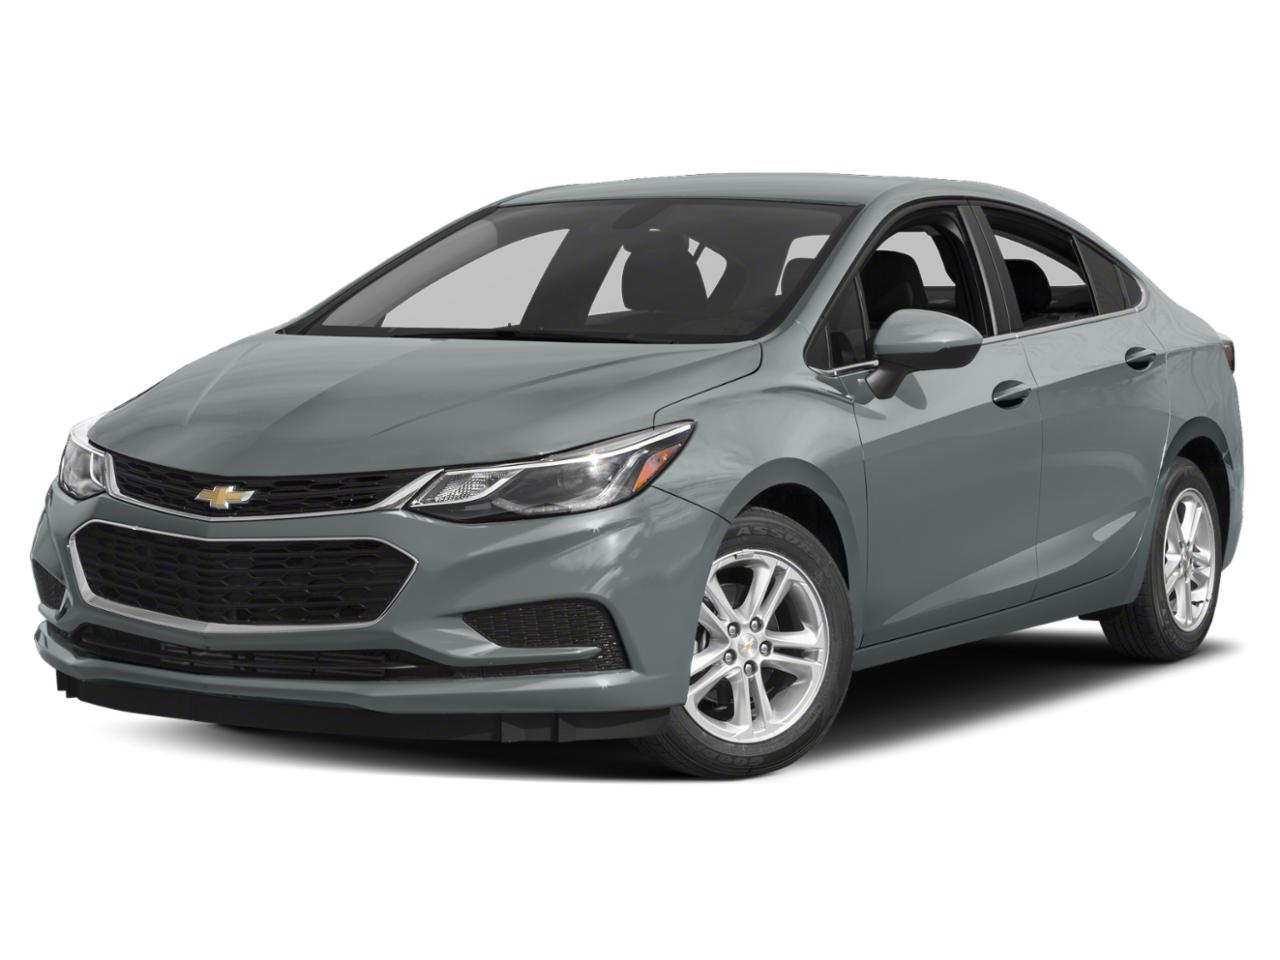 2018 Chevrolet Cruze Vehicle Photo in Plainfield, IL 60586